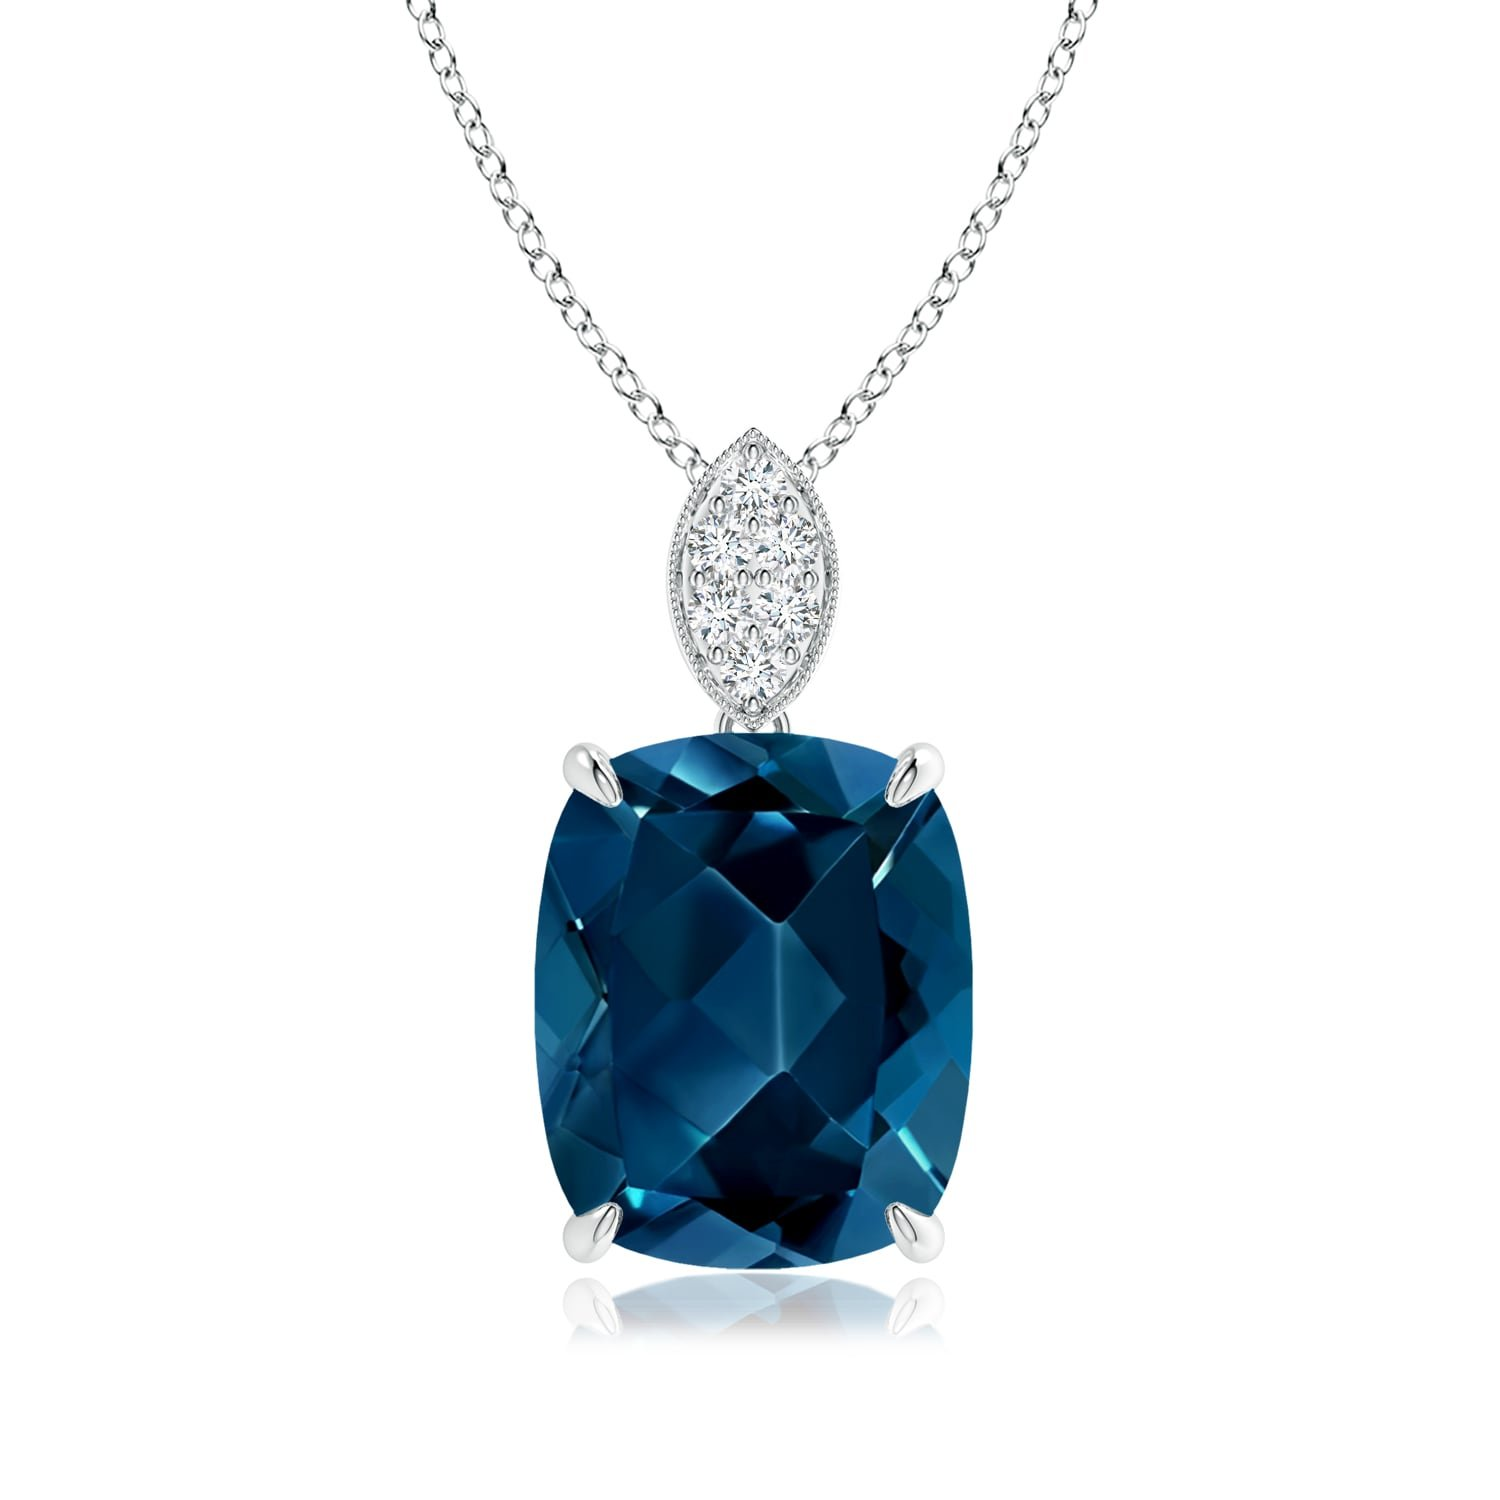 Gifts for Mom - Cushion London Blue Topaz Pendant with Diamond Leaf Bale in 14K White Gold (11x9mm London Blue Topaz)